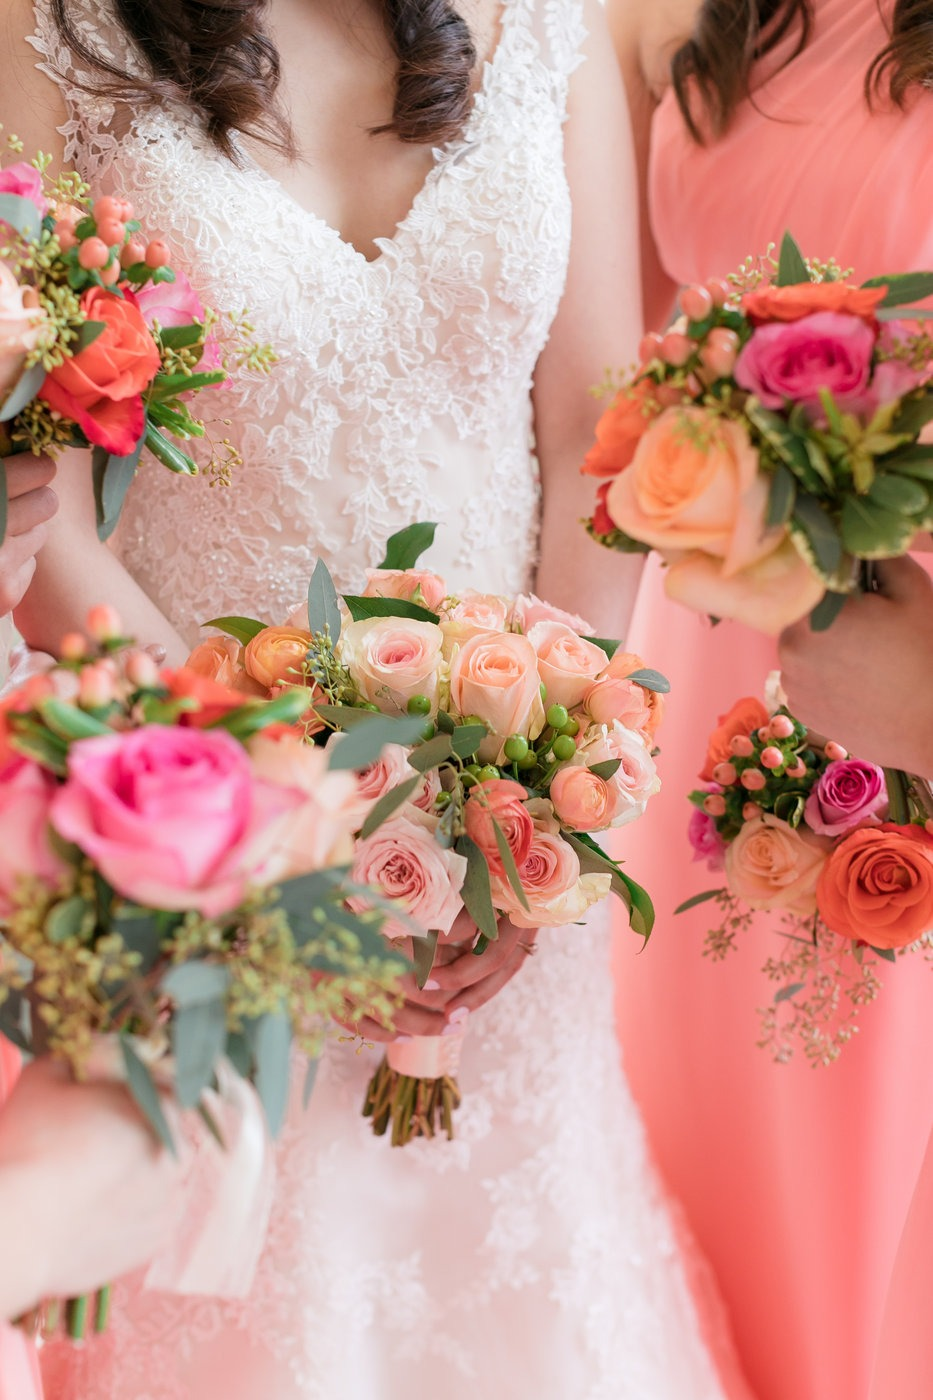 Bride and bridesmaids with gorgeous floral arrangements